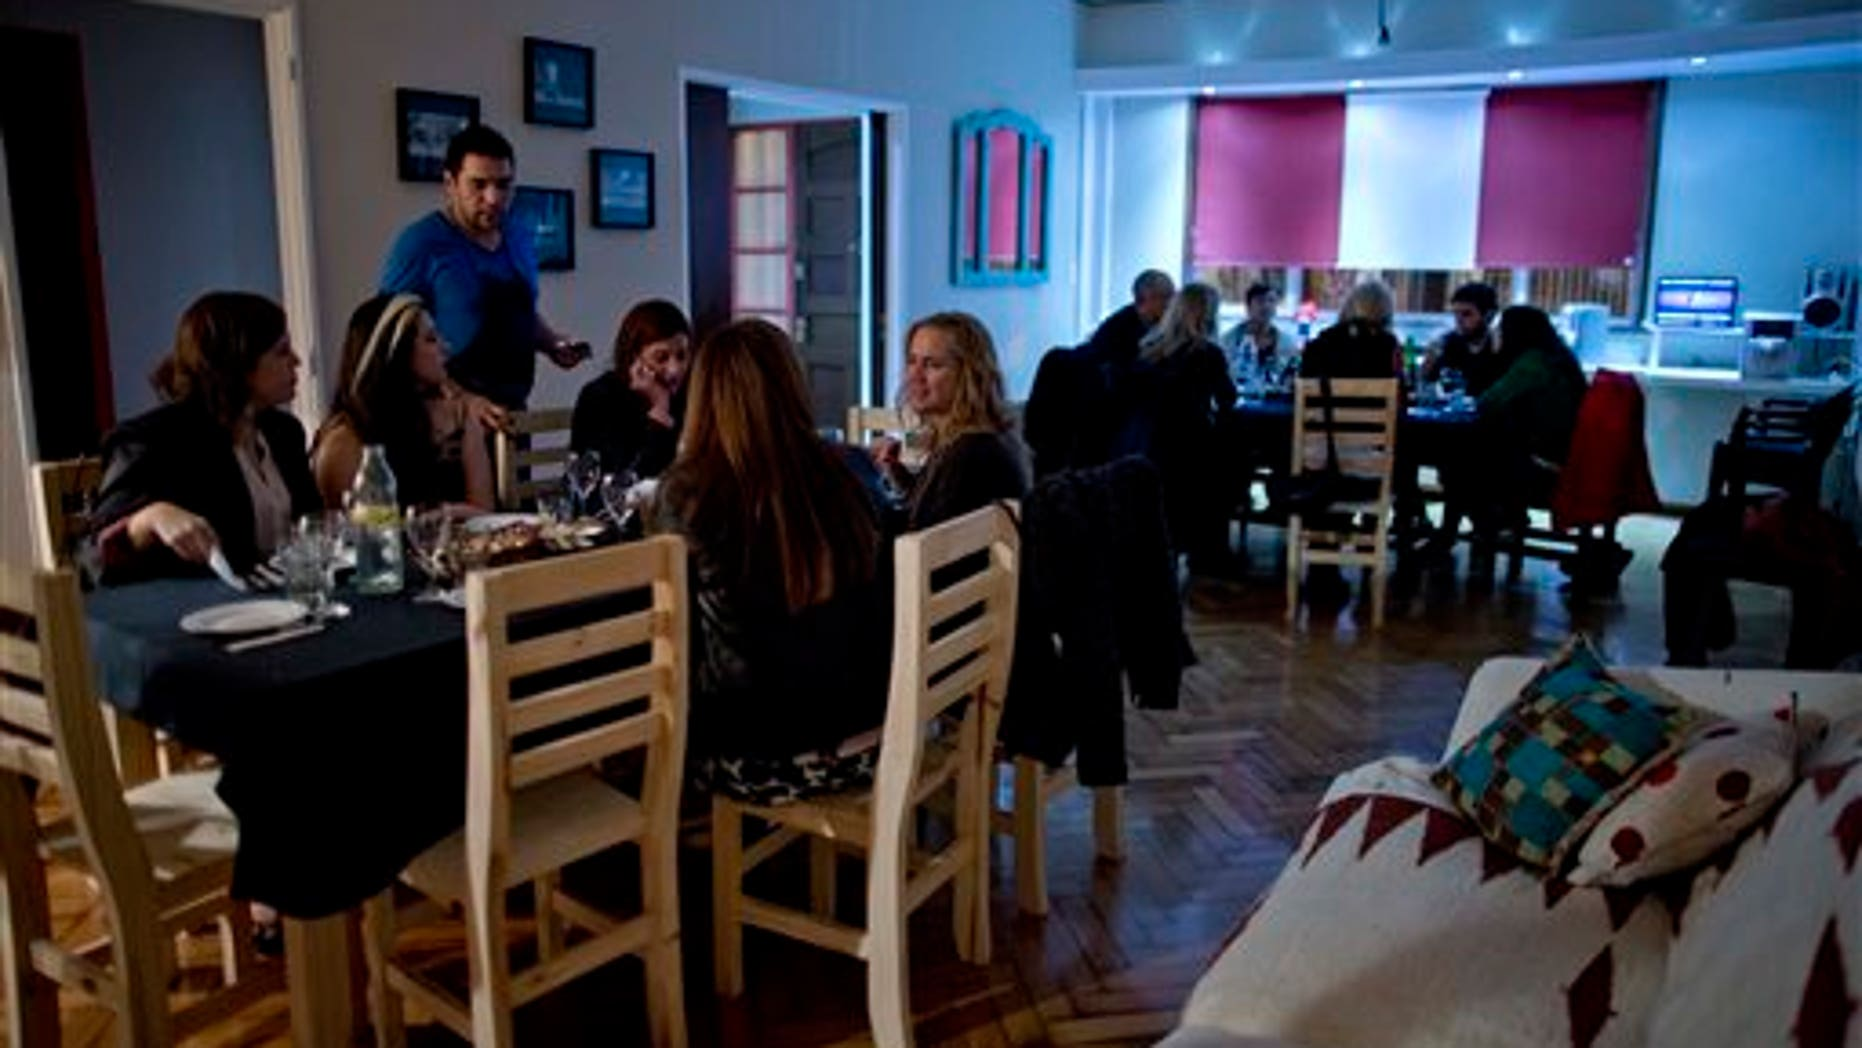 In this April 12, 2014, photo, Chef Ezequiel De La Torre, left top, talks to customers in Buenos Aires, Argentina. The website www.cookapp.com was launched in March 2013 and recently moved its headquarters from Buenos Aires to New York City. It works like a matchmaker, arranging intimate gourmet dinners between strangers. Chefs list when and where they will prepare particular meals; diners book what interests them, pay upfront via the app, then just show up and enjoy.  (AP Photo/Natacha Pisarenko)